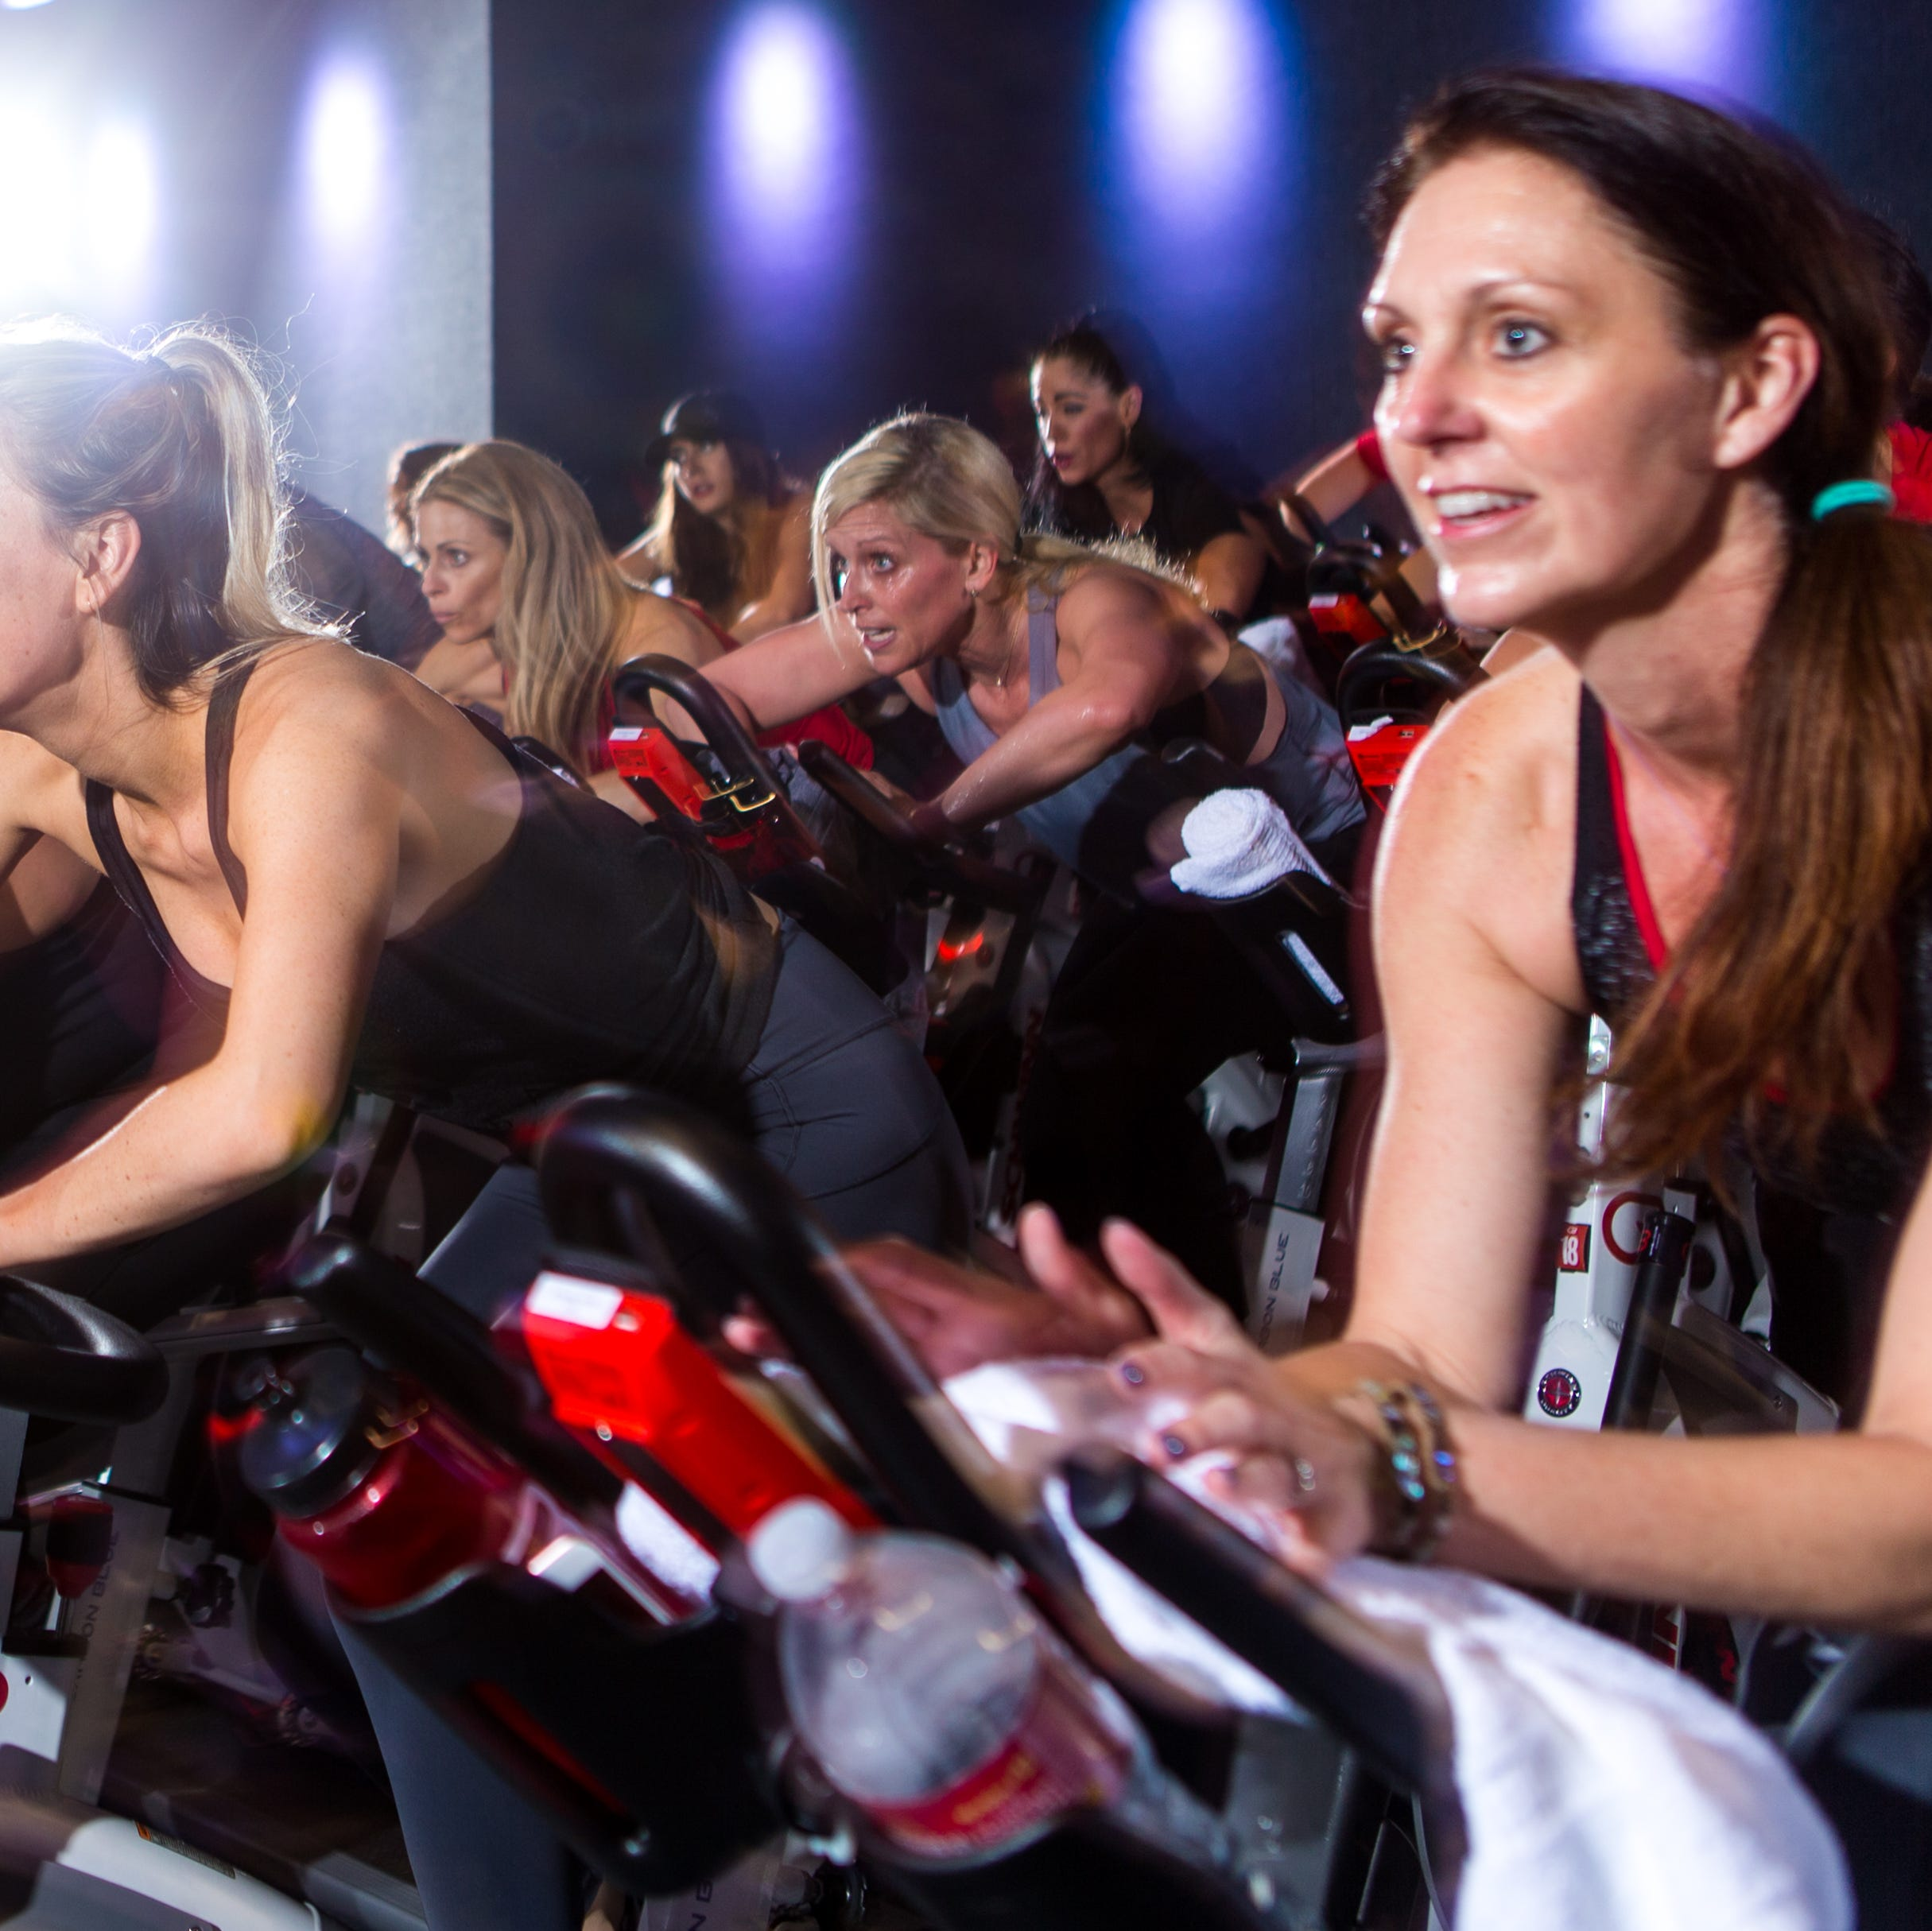 Indoor cycling studio rolls into West Des Moines